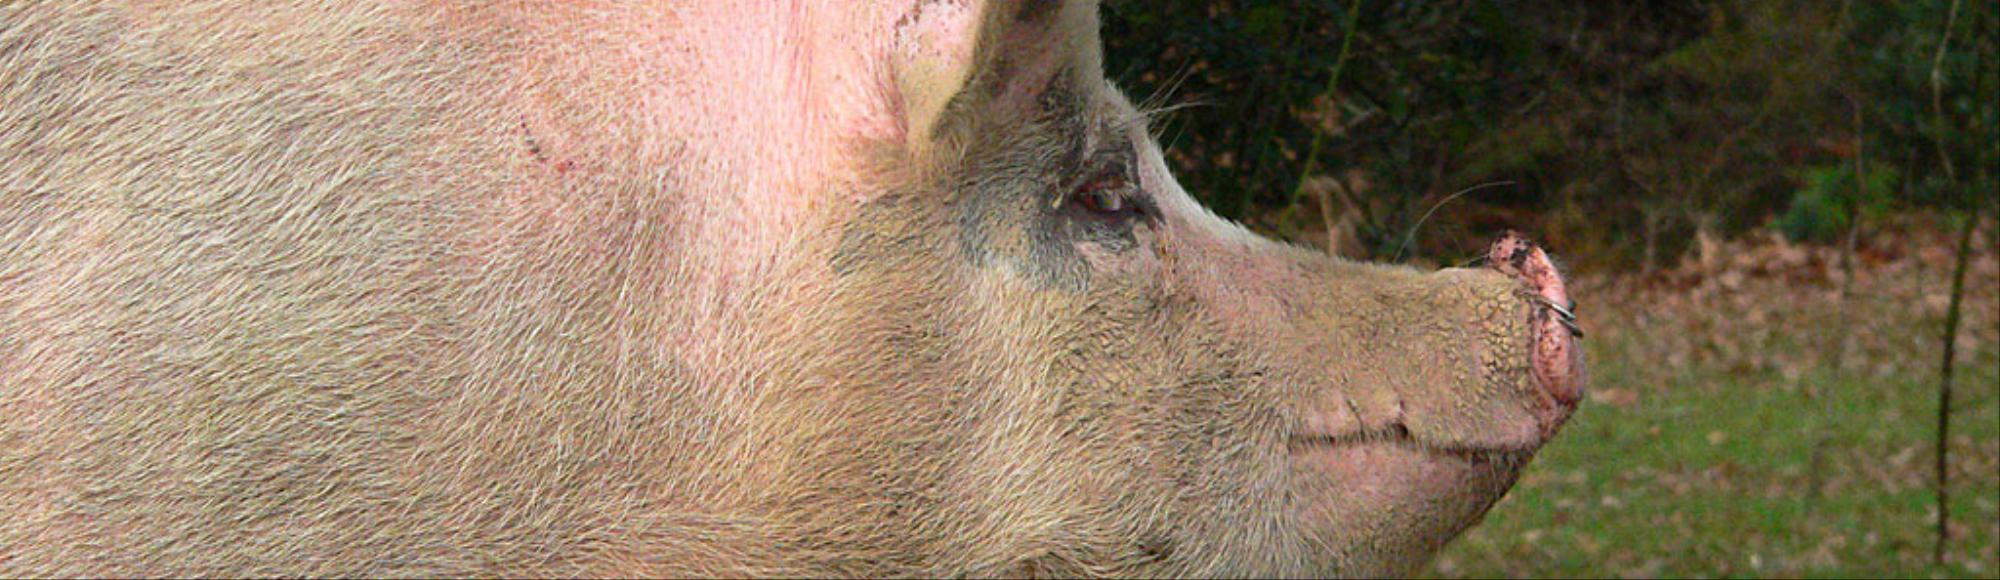 A Virus That Killed 7 Million Swine Has Reemerged in Indiana